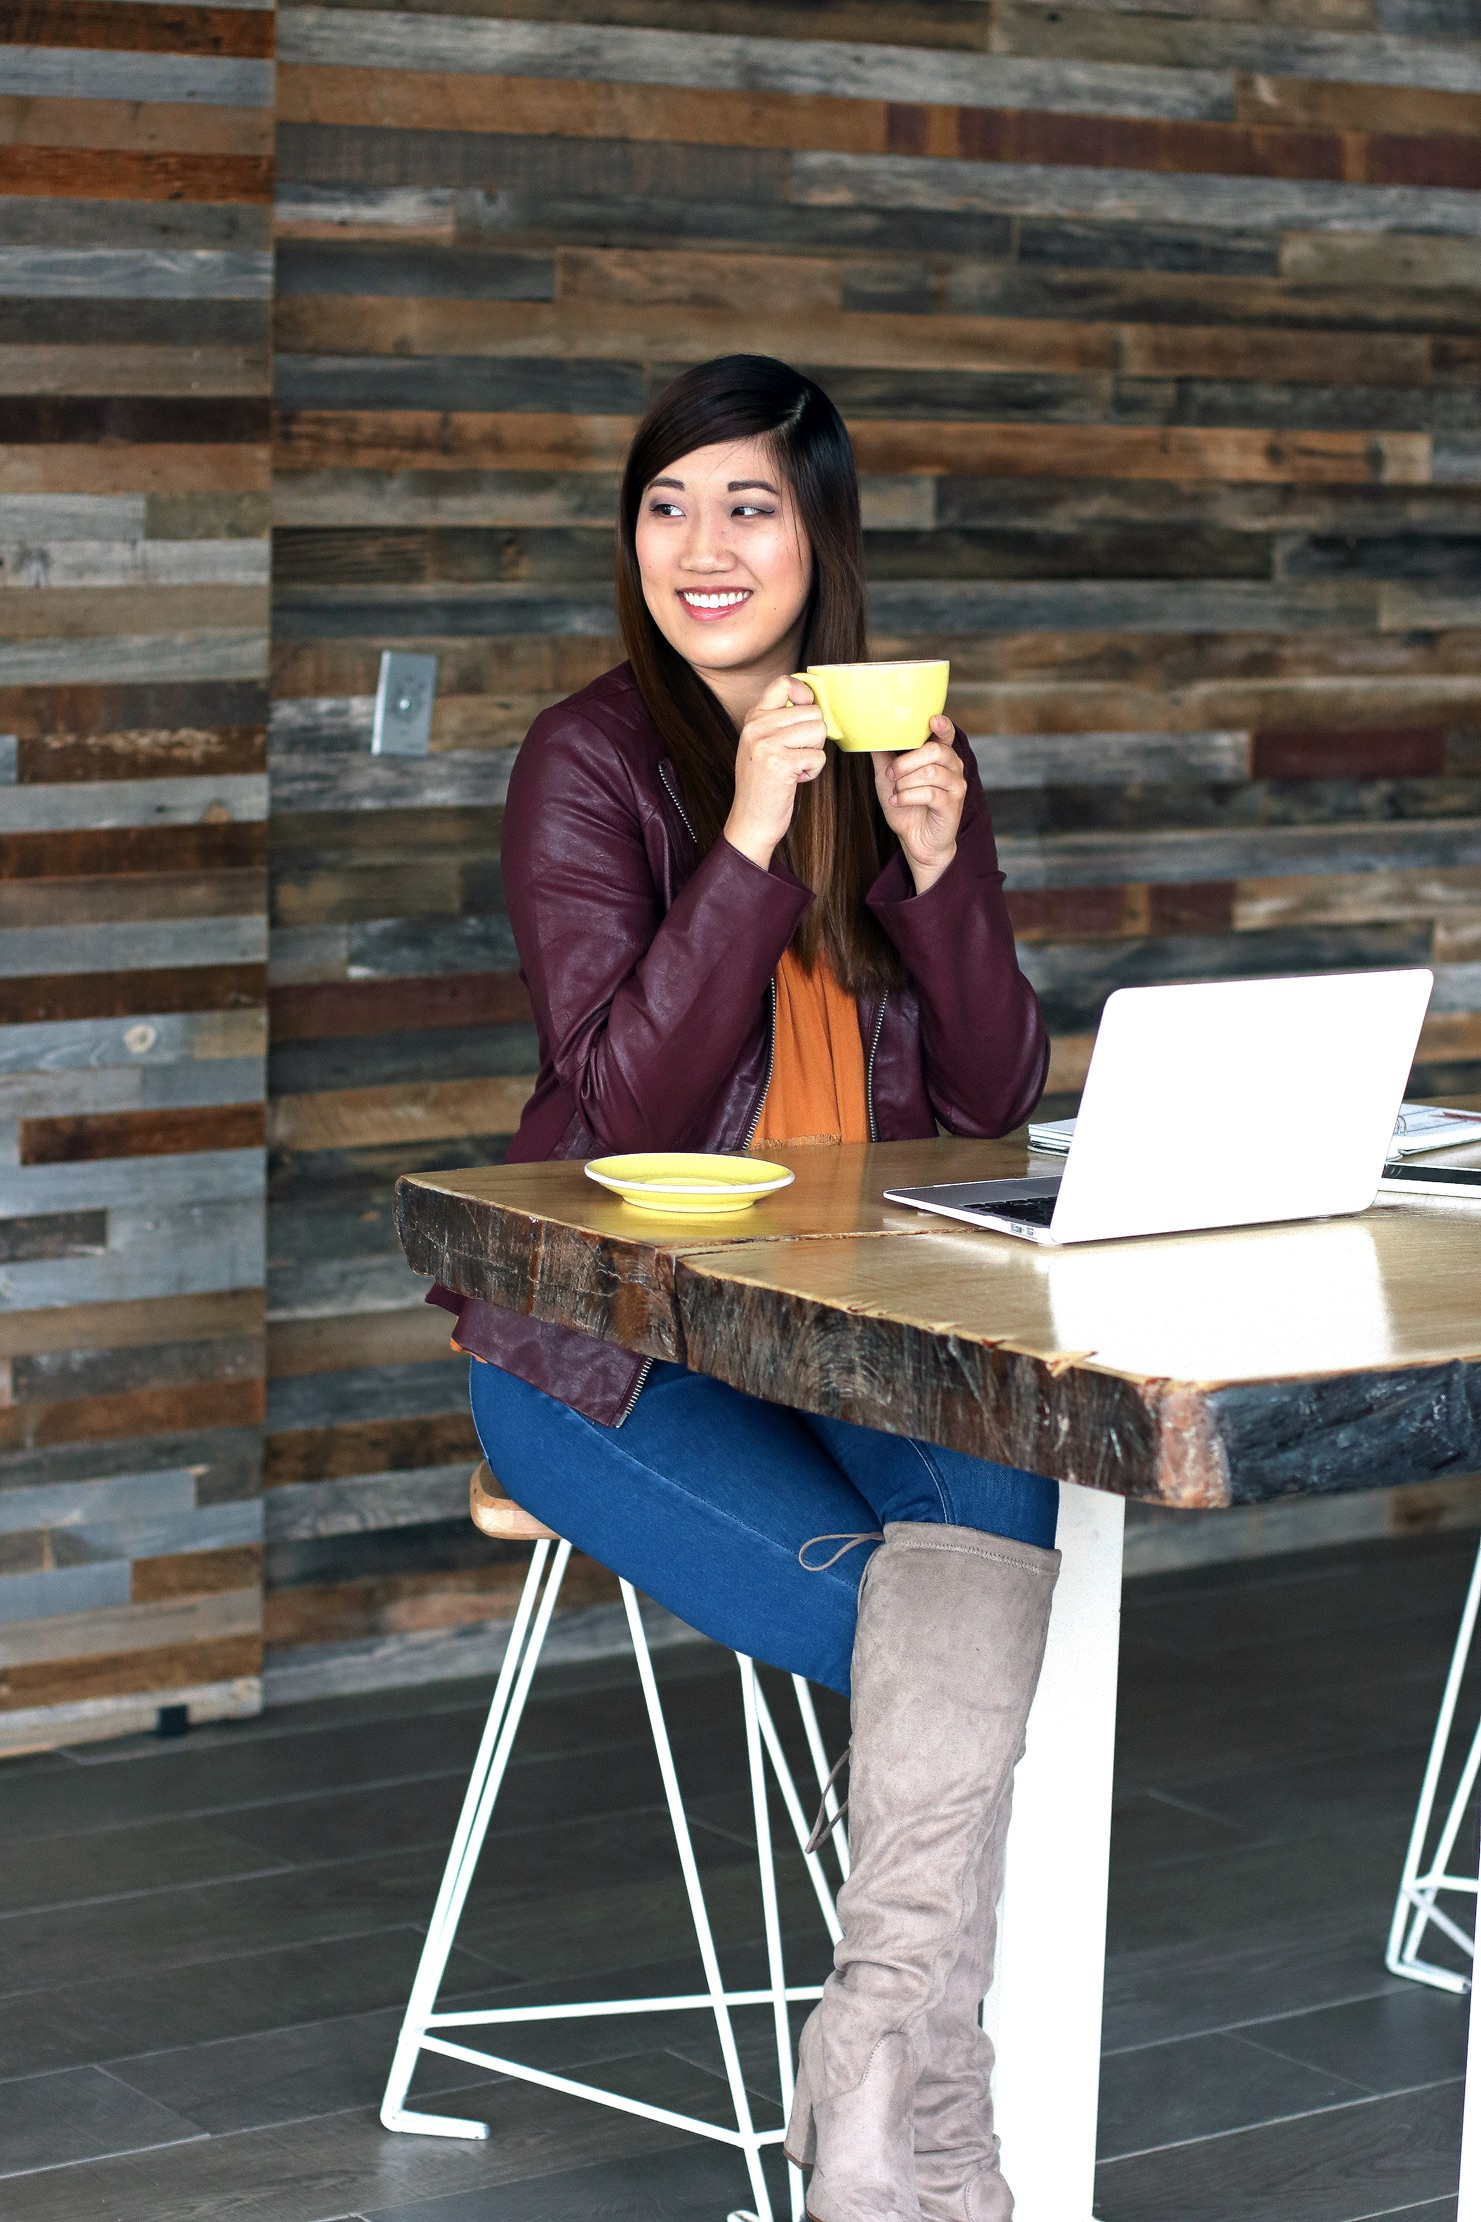 PC: Sharon Litz (@sharonlitz) from www.sharinaona.com (Taken at Coffee For Two)